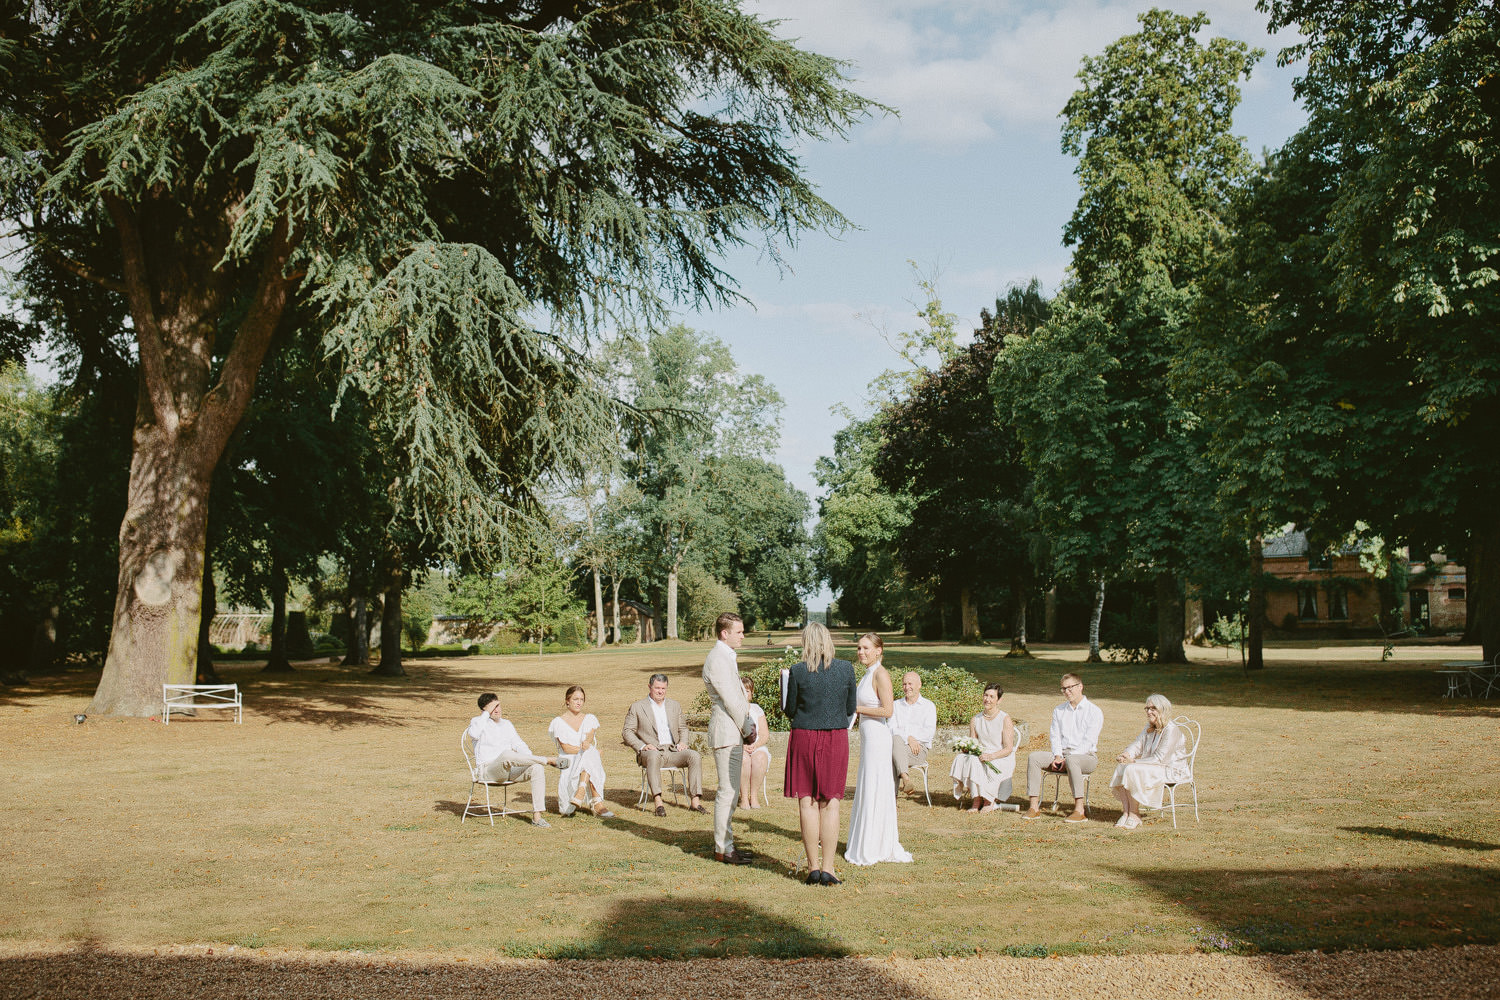 wedding ceremony on lawns of Chateau de Bouthonvilliers